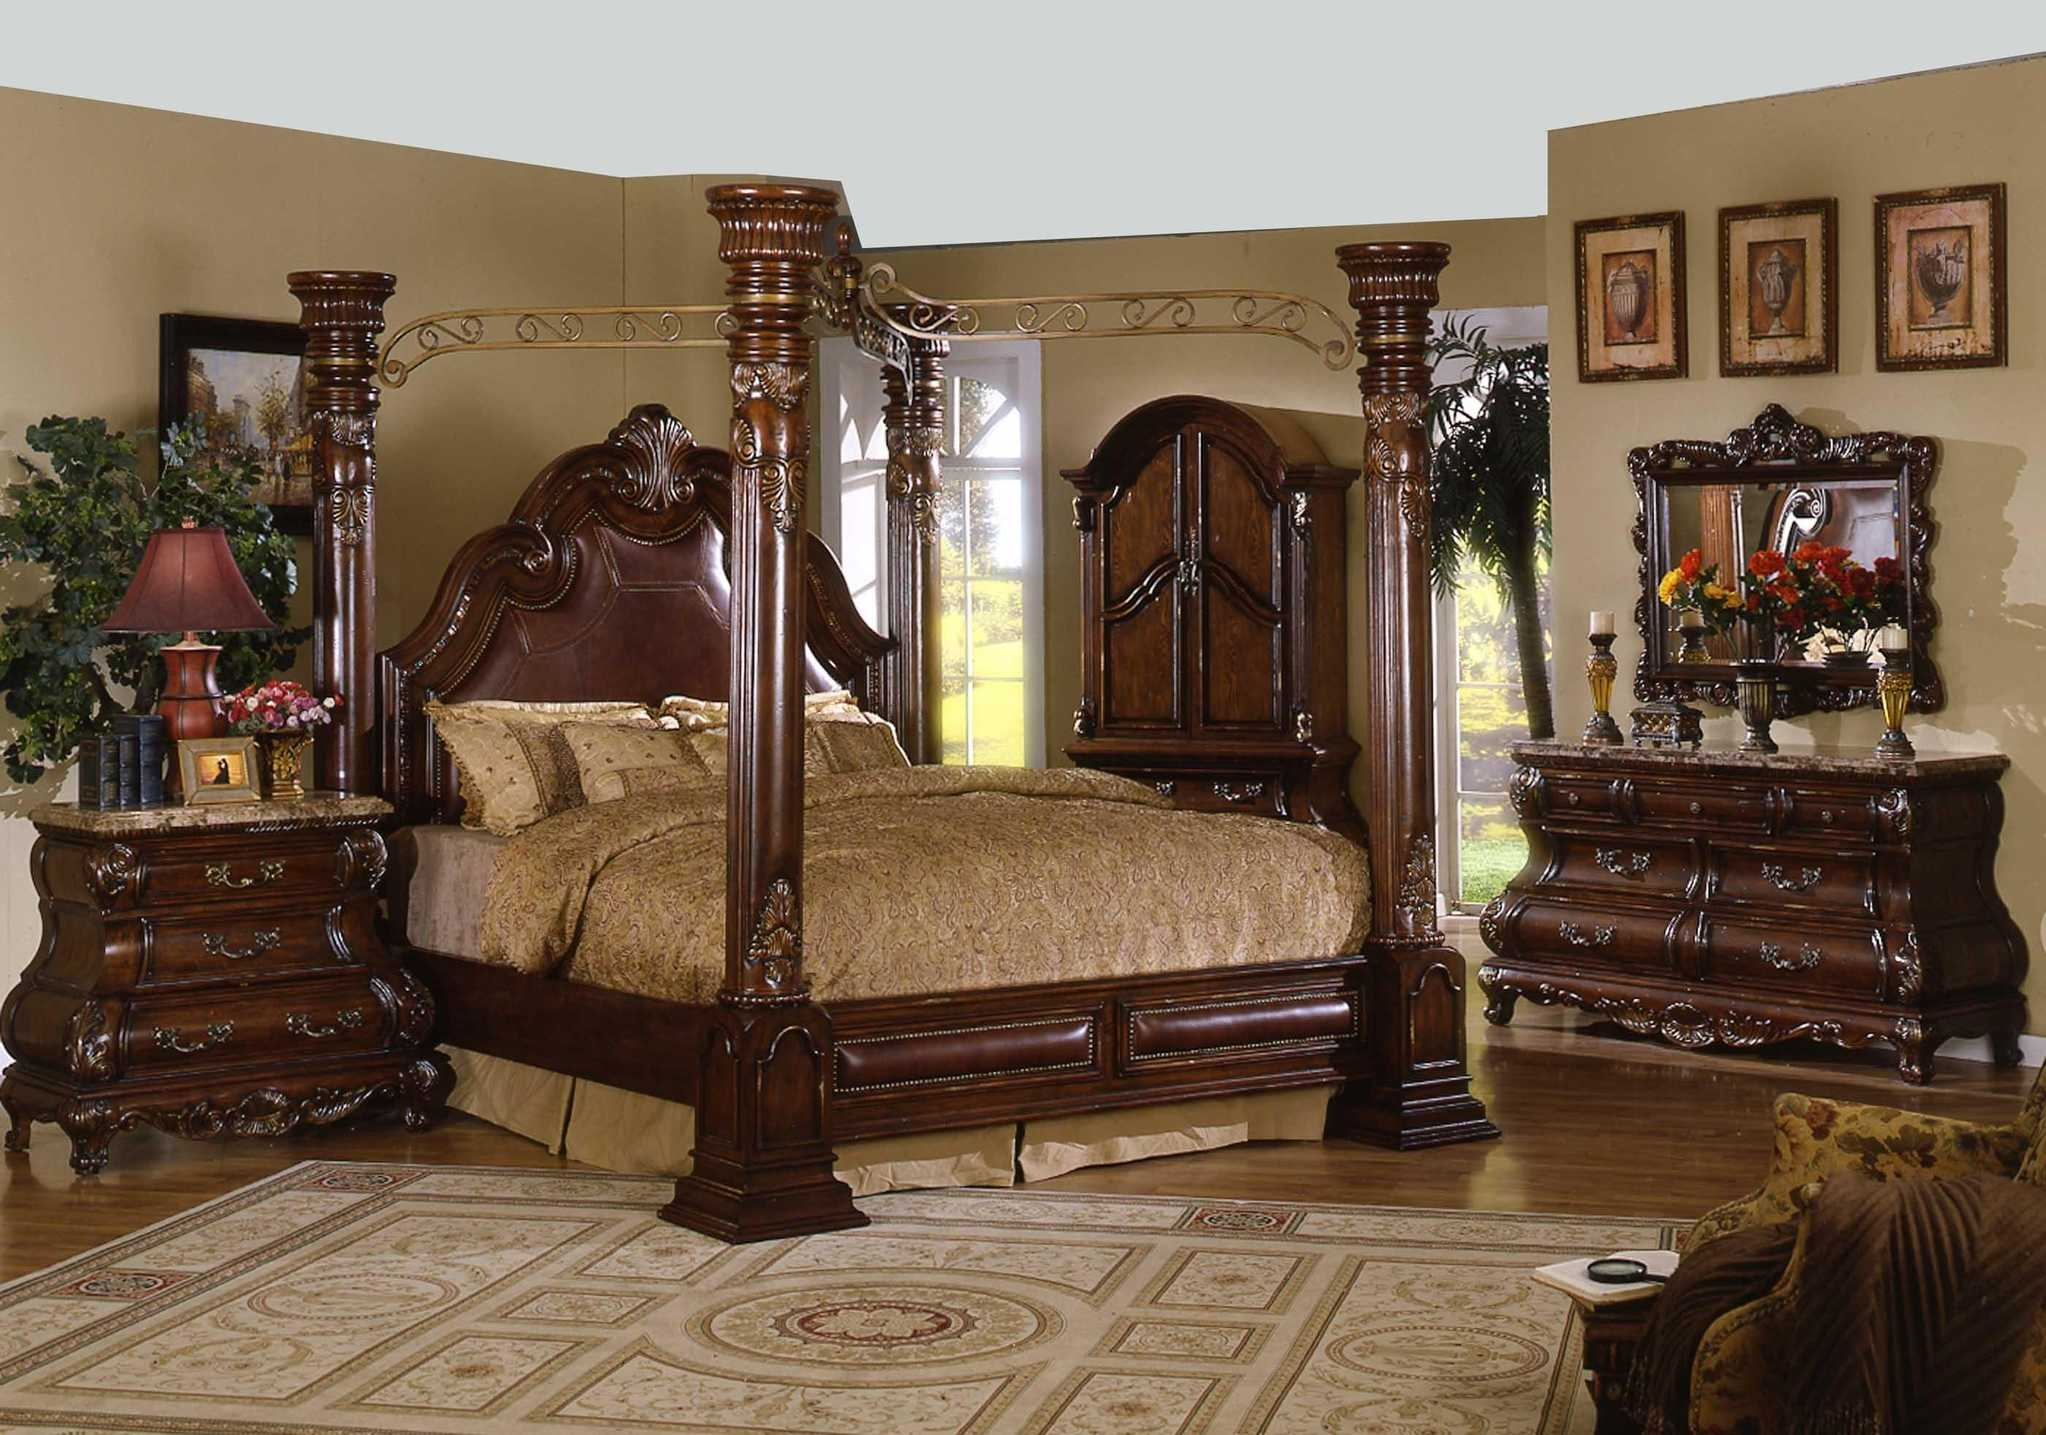 King Size Bed Frame With Postswood canopy bed frame king amys office